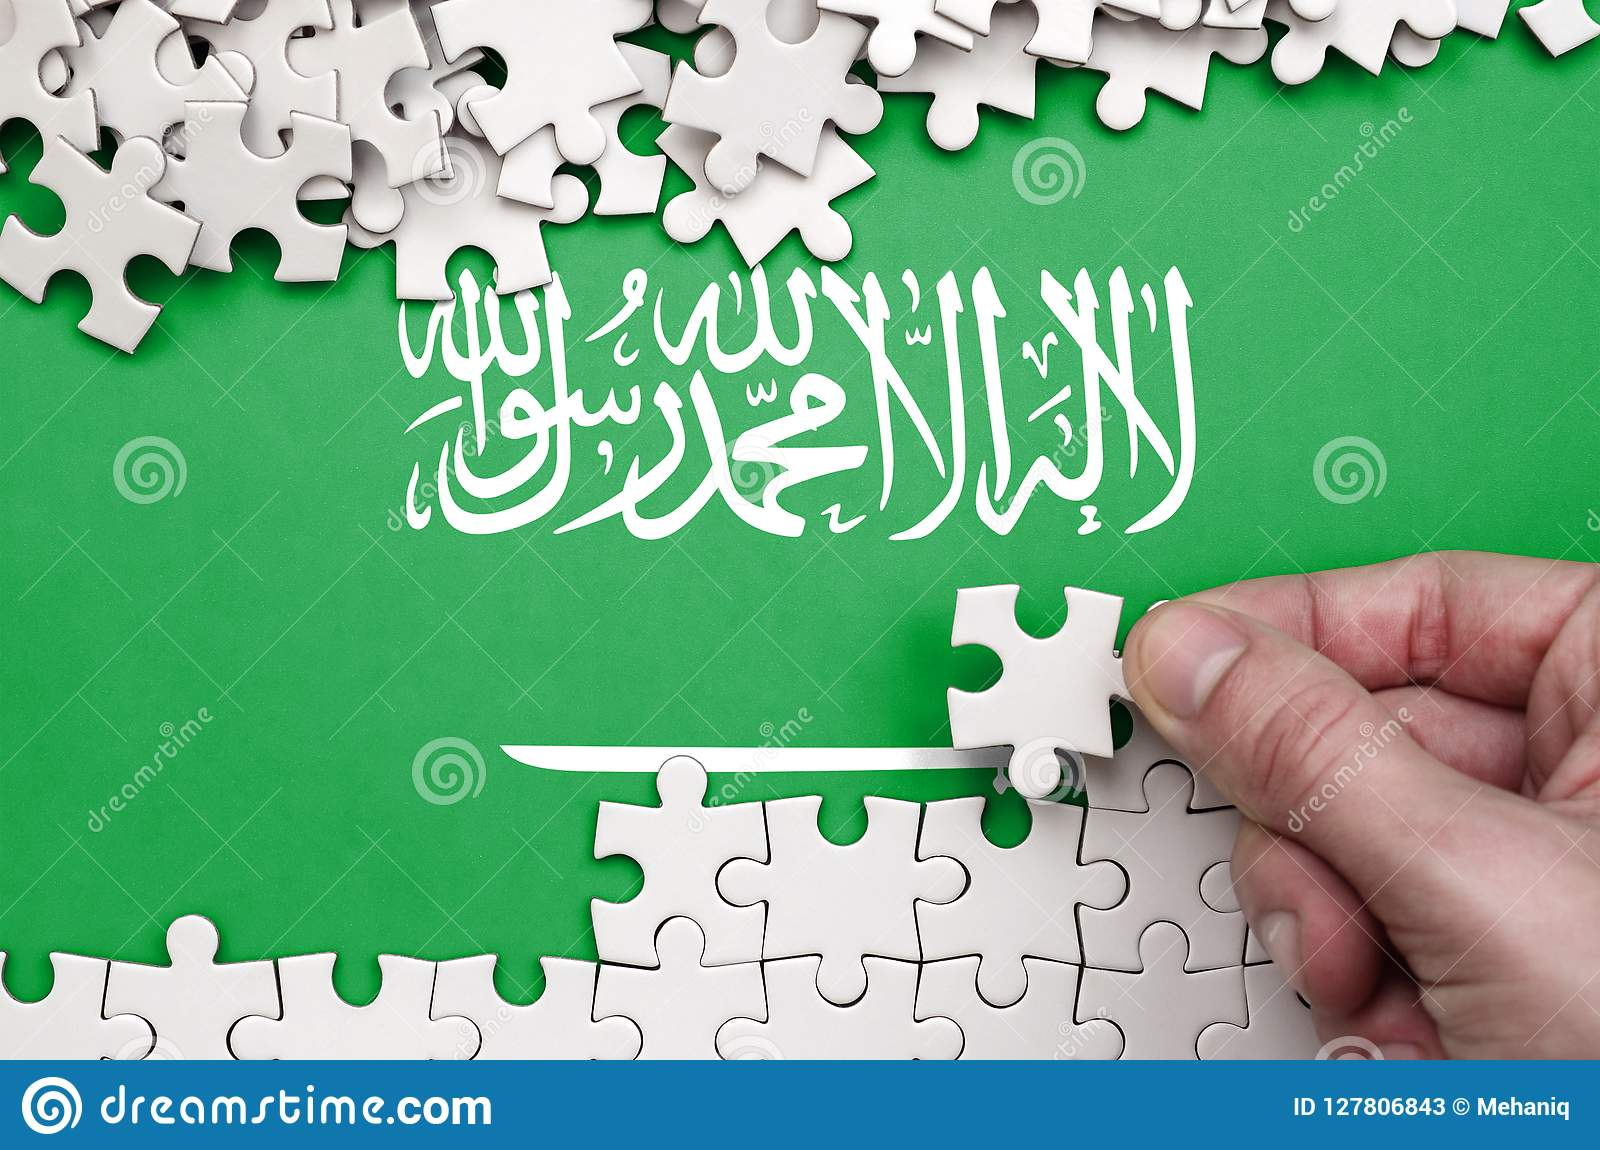 Saudi Arabia flag is depicted on a table on which the human hand folds a puzzle of white color